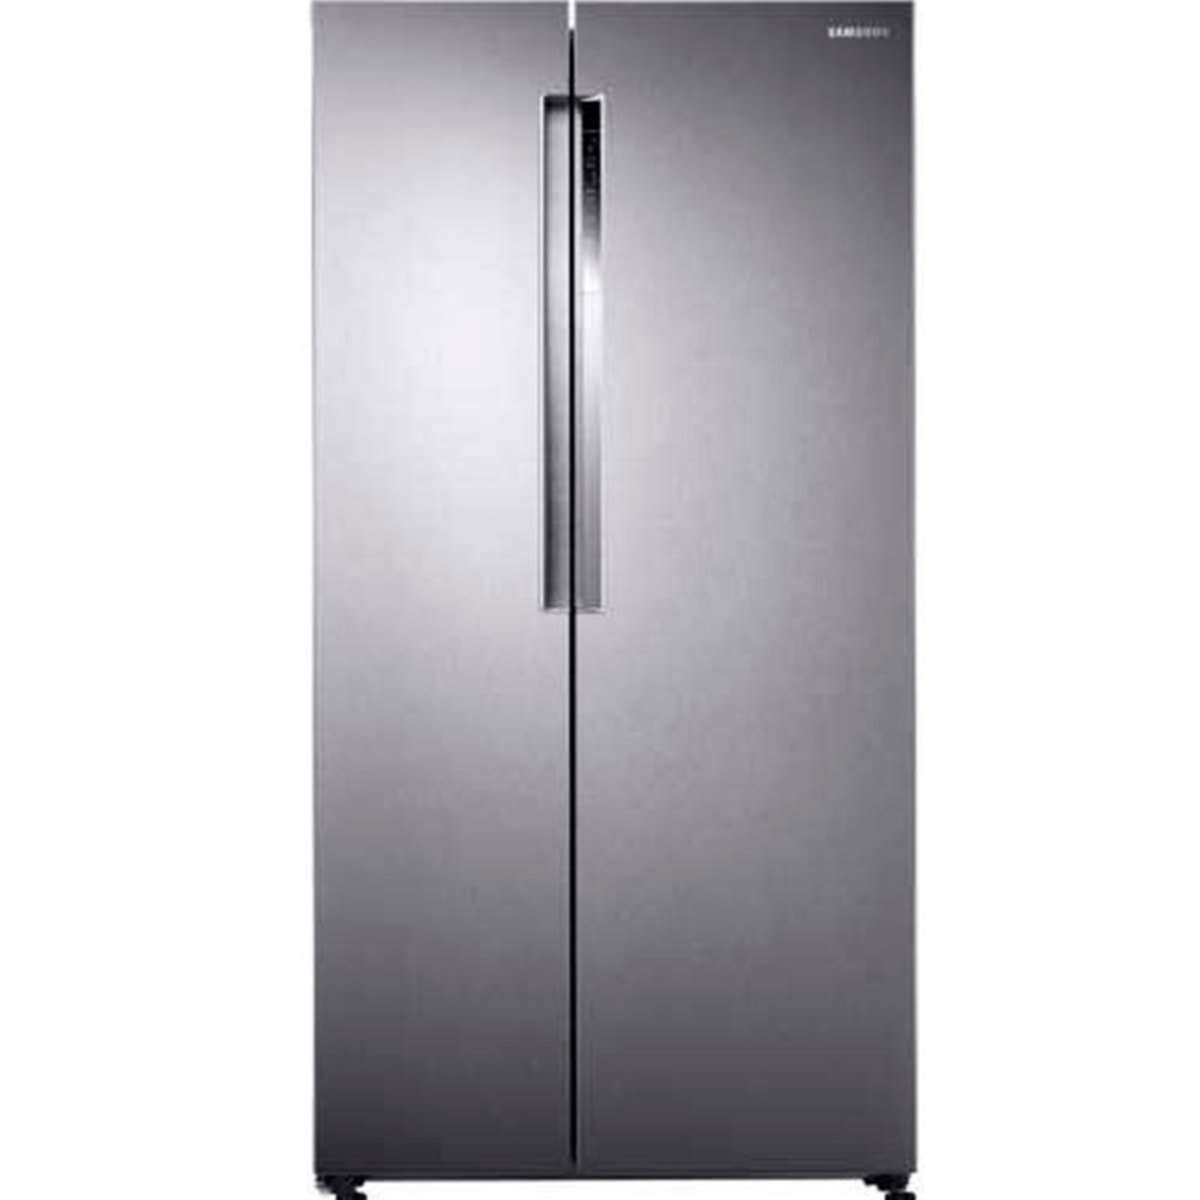 RS62K6227SL/SH 620L Side by Side Refrigerator  Hong Kong Warranty Genuine Products